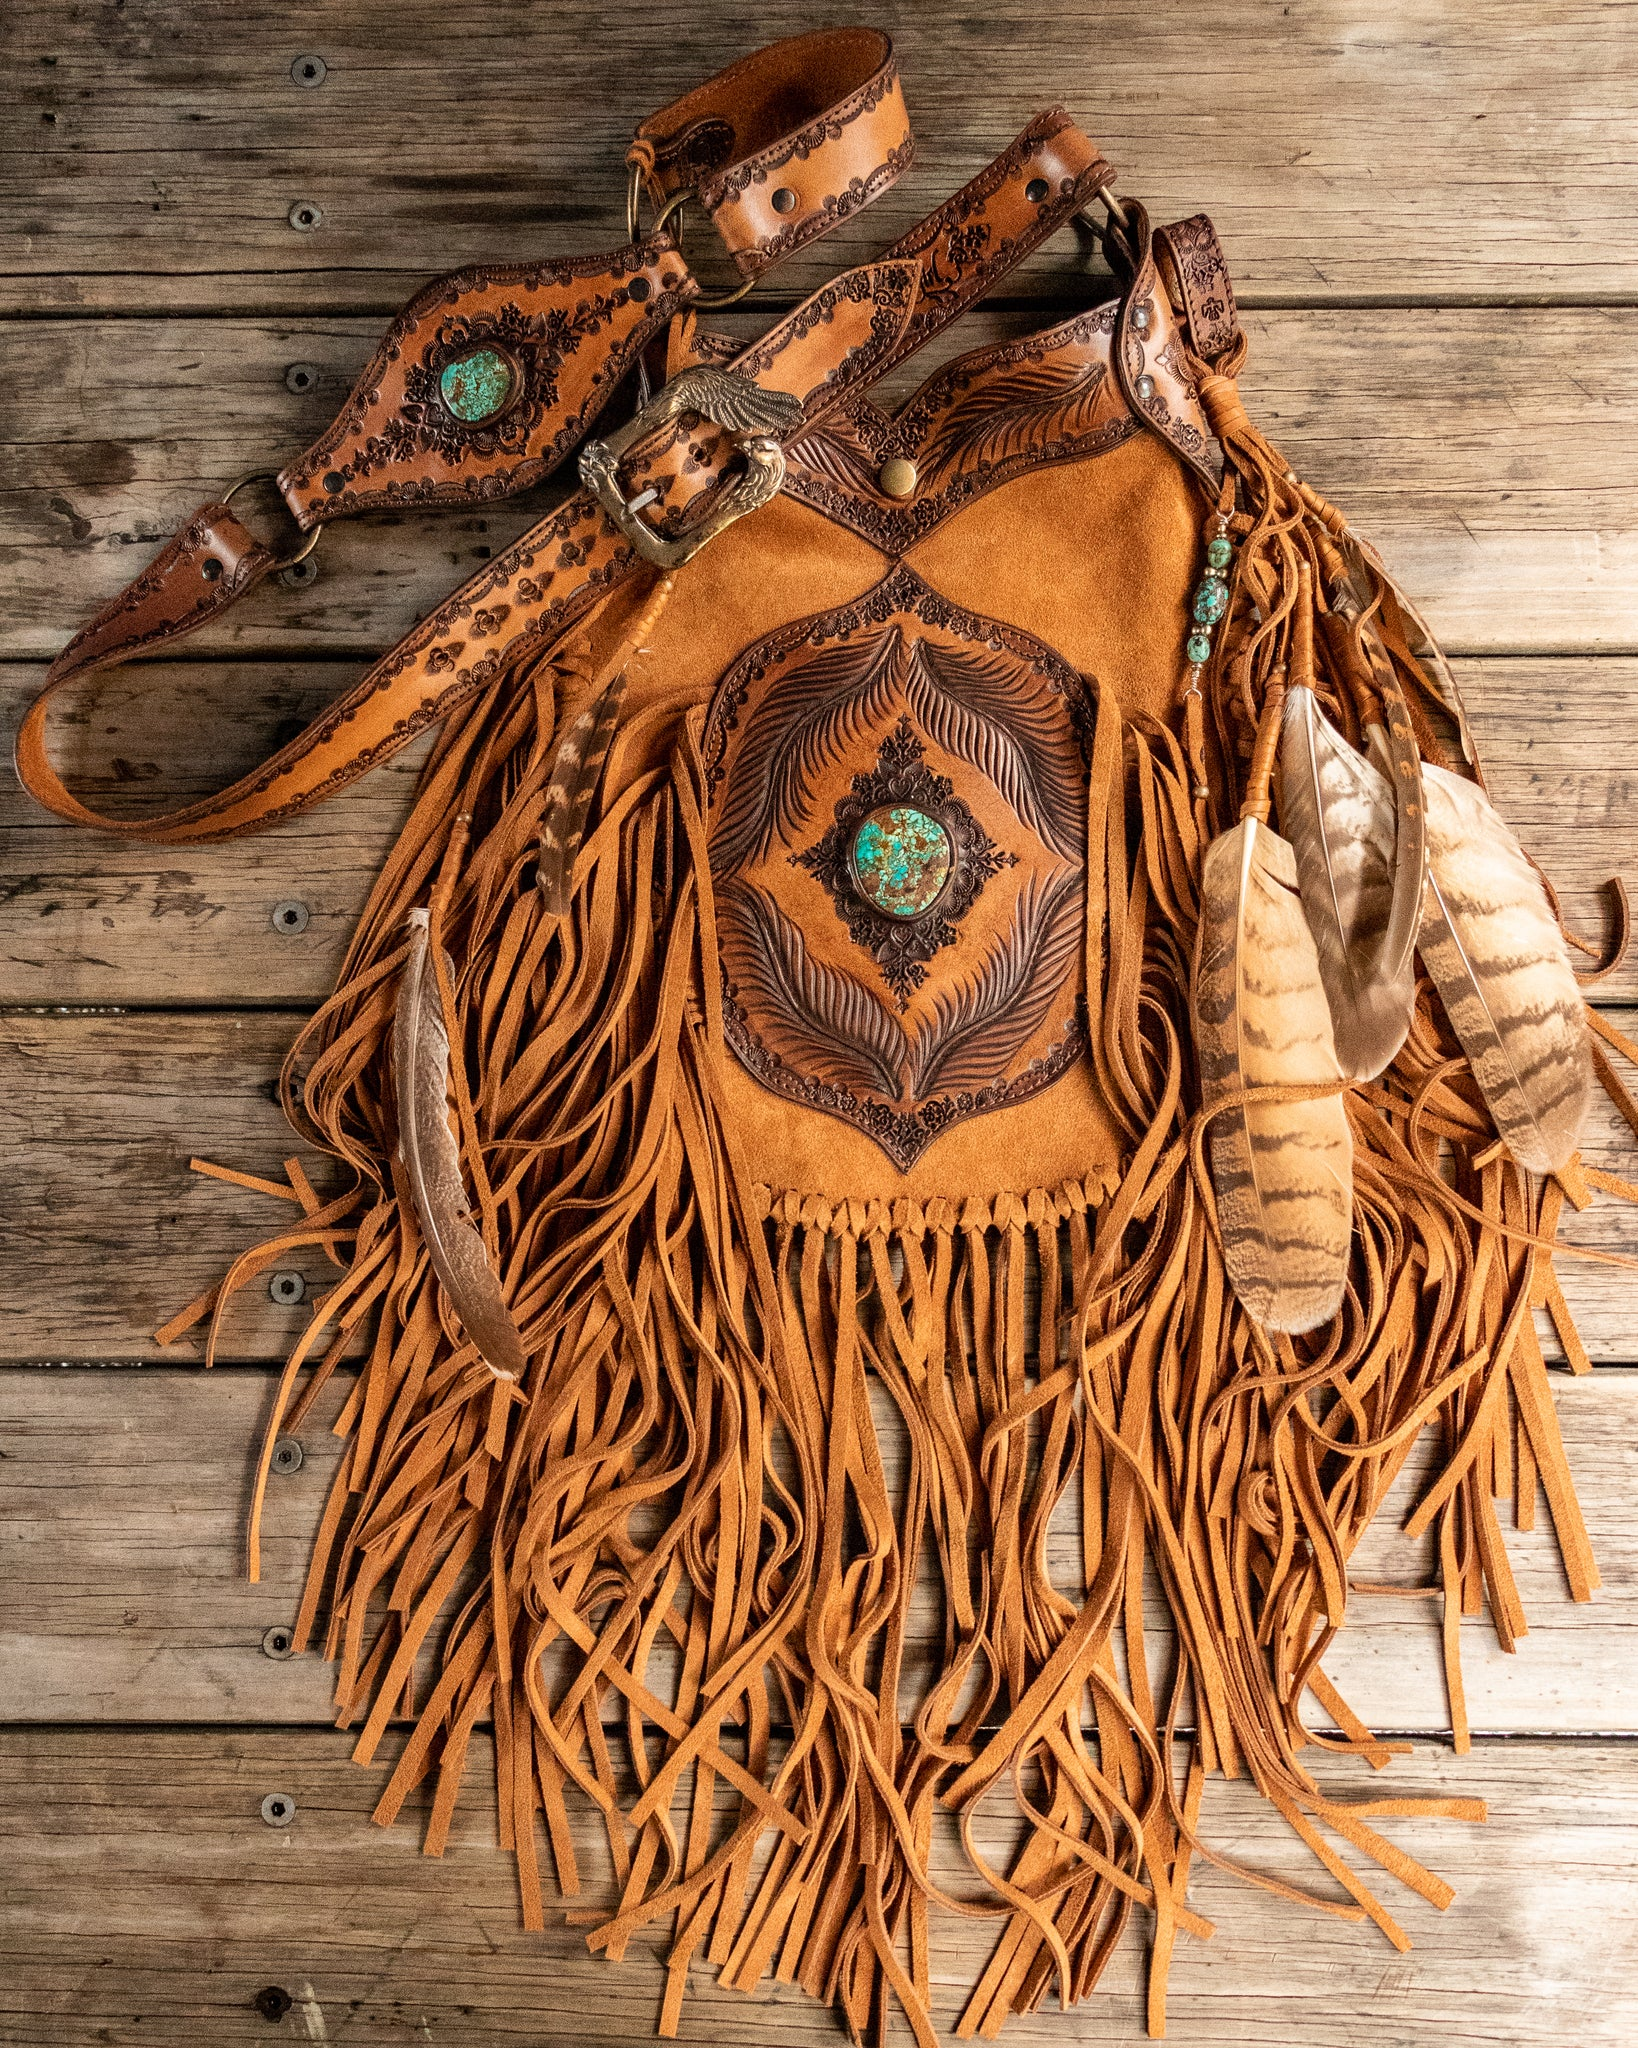 Apache Tasseled Bag with Royston Turquoise in rich tan suede - $2800